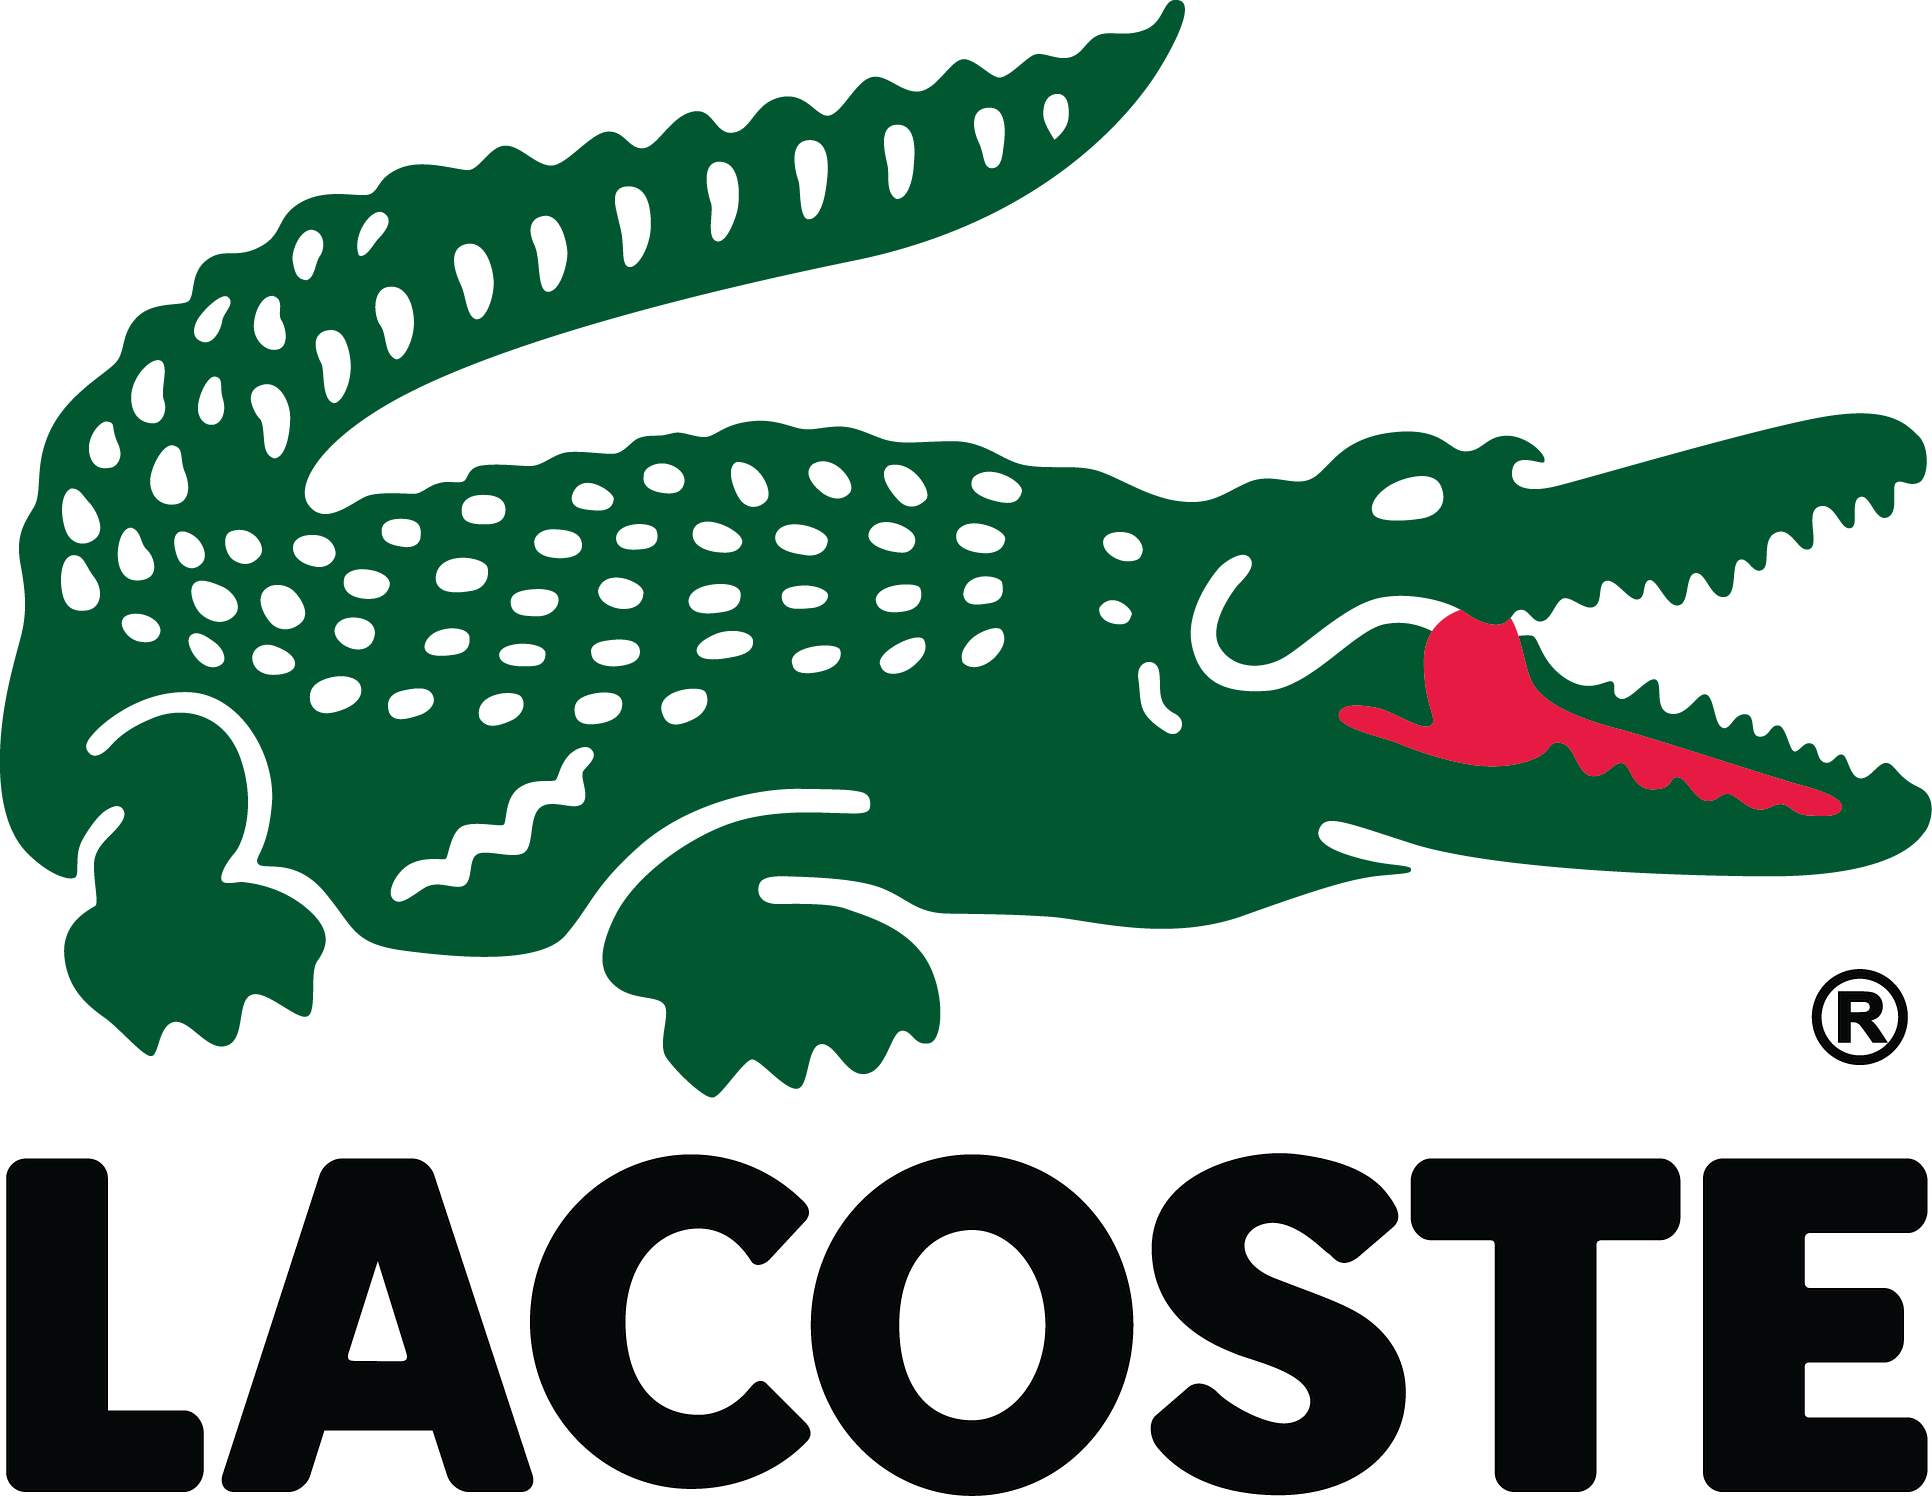 Lacoste Company logos and names, Clothing logo